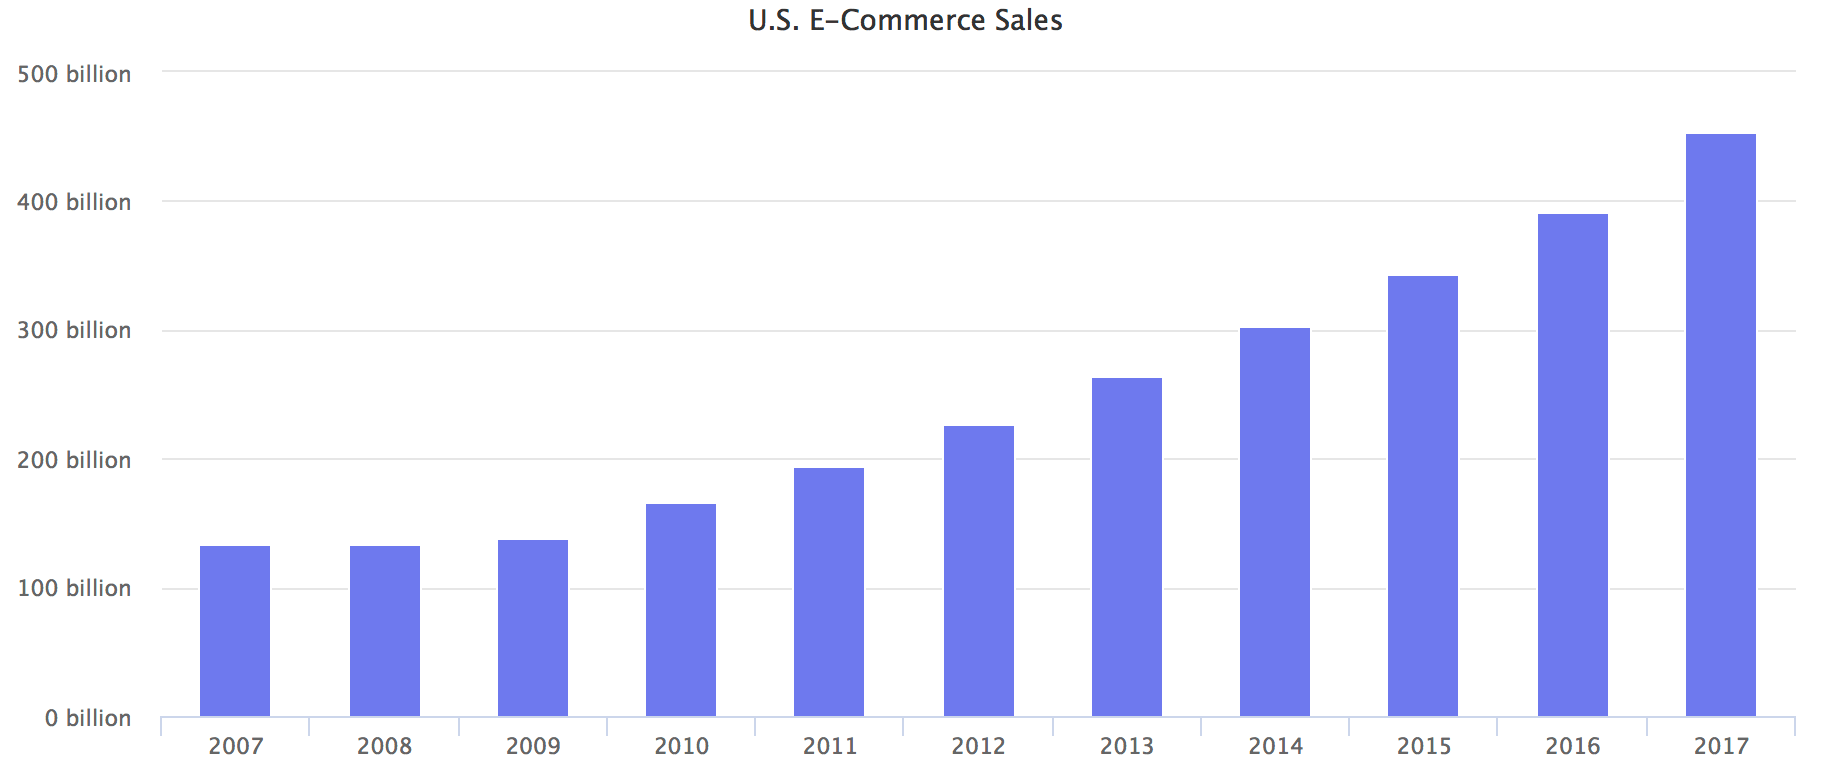 U.S. E-Commerce Sales